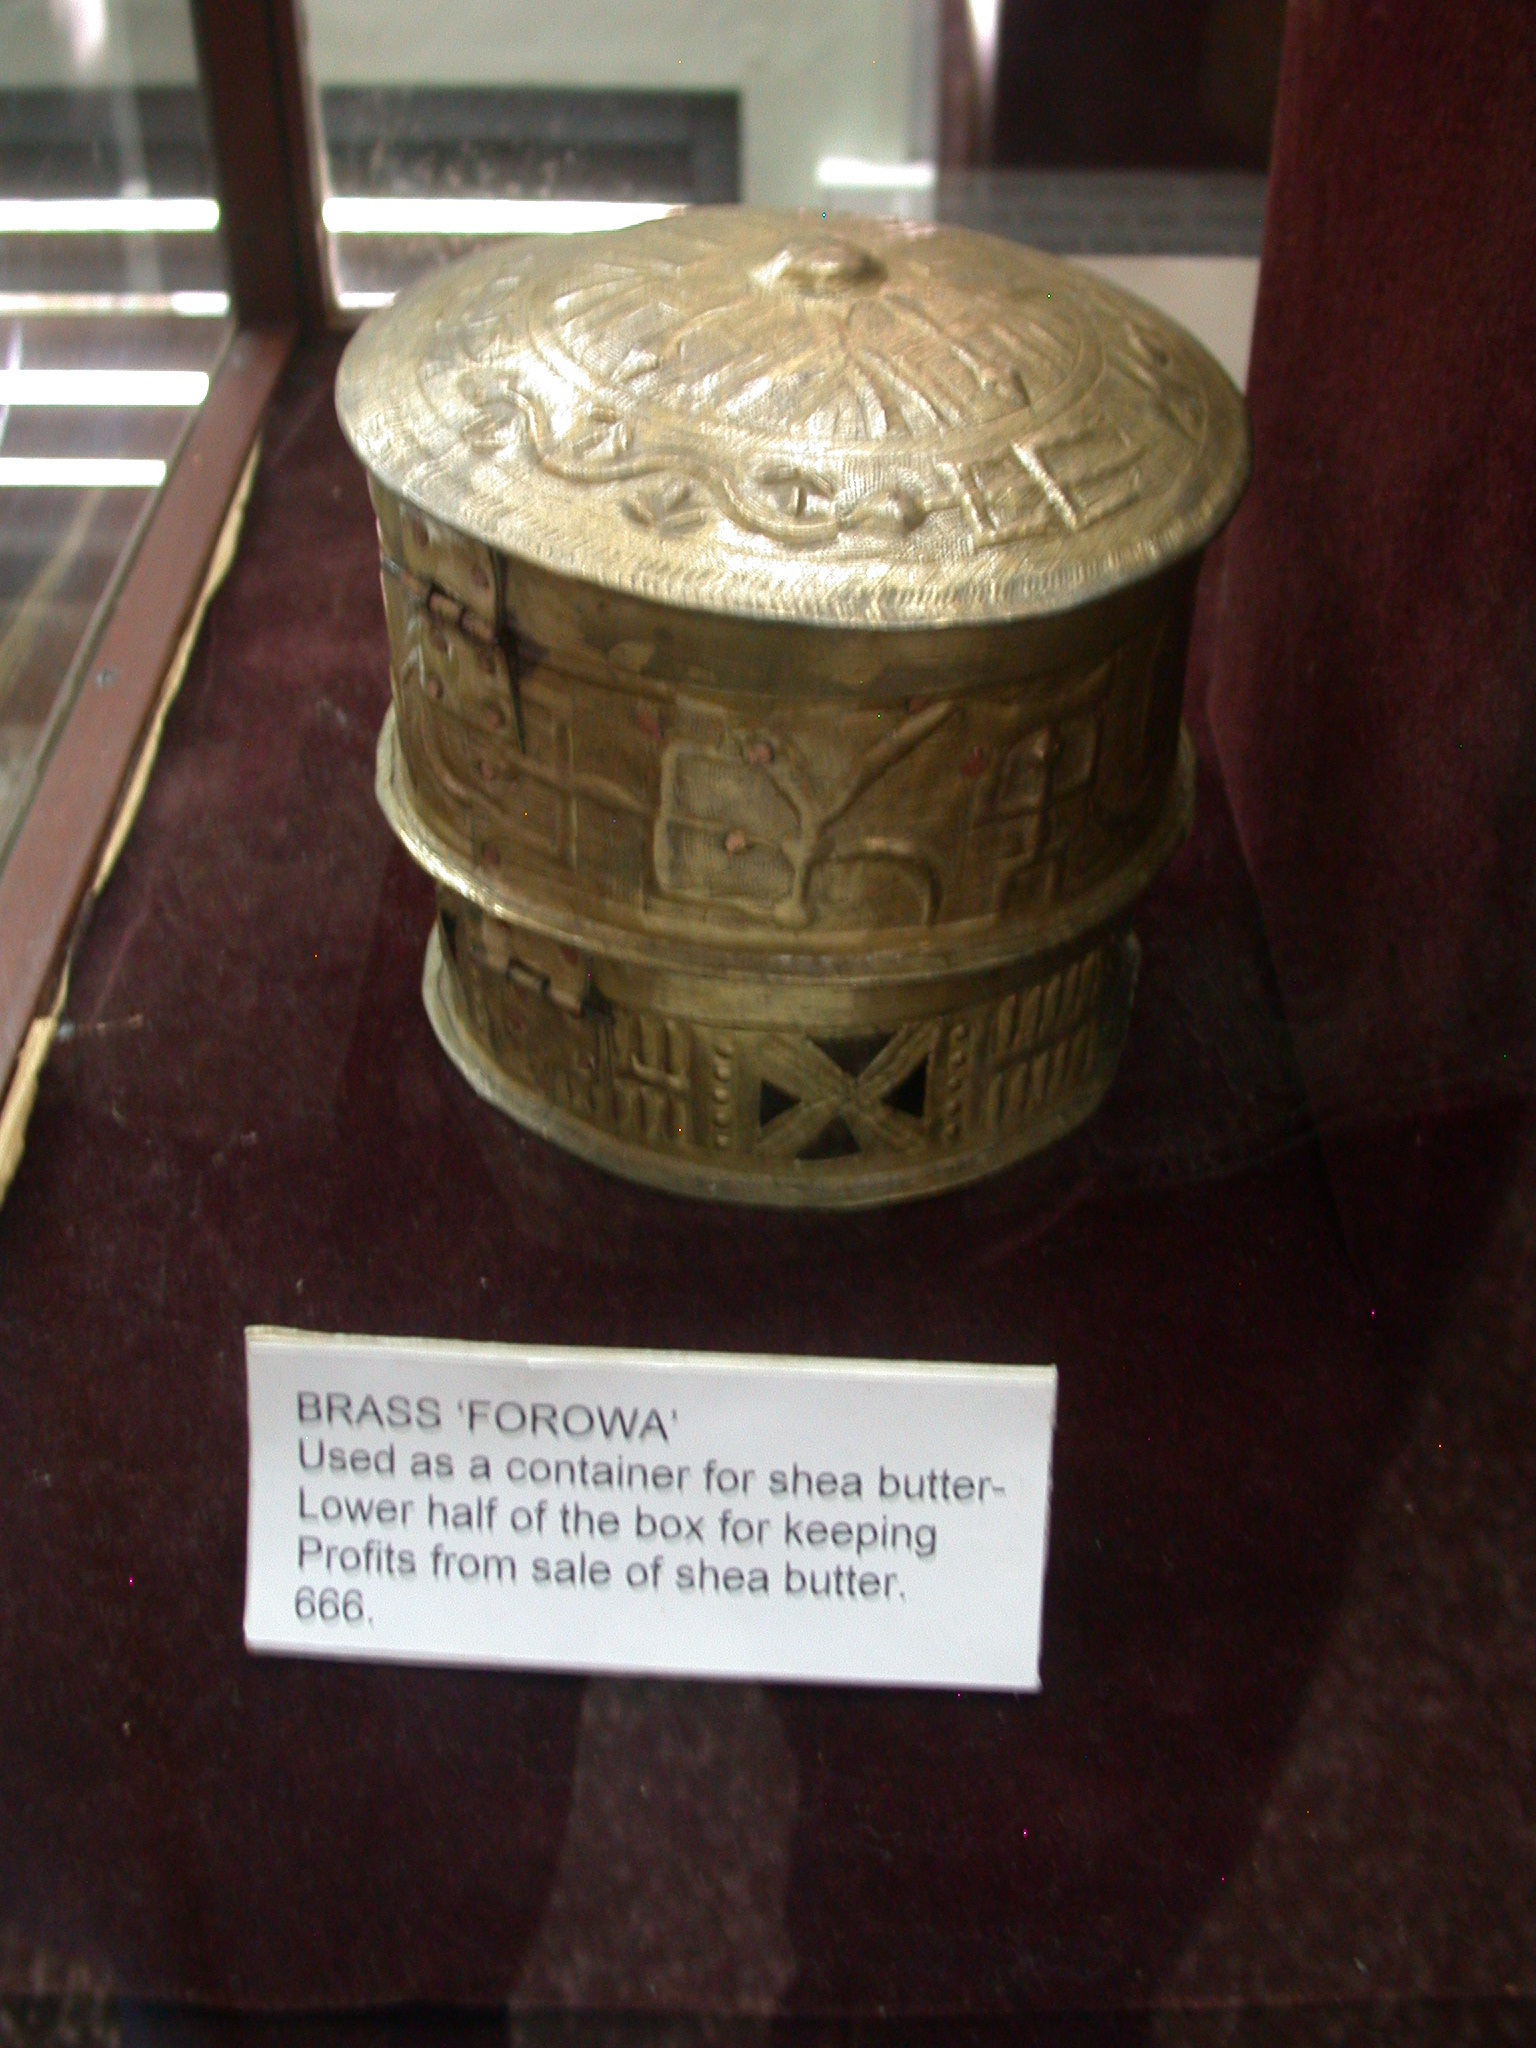 Brass Forowa Shea Butter Container, National Museum, Accra, Ghana